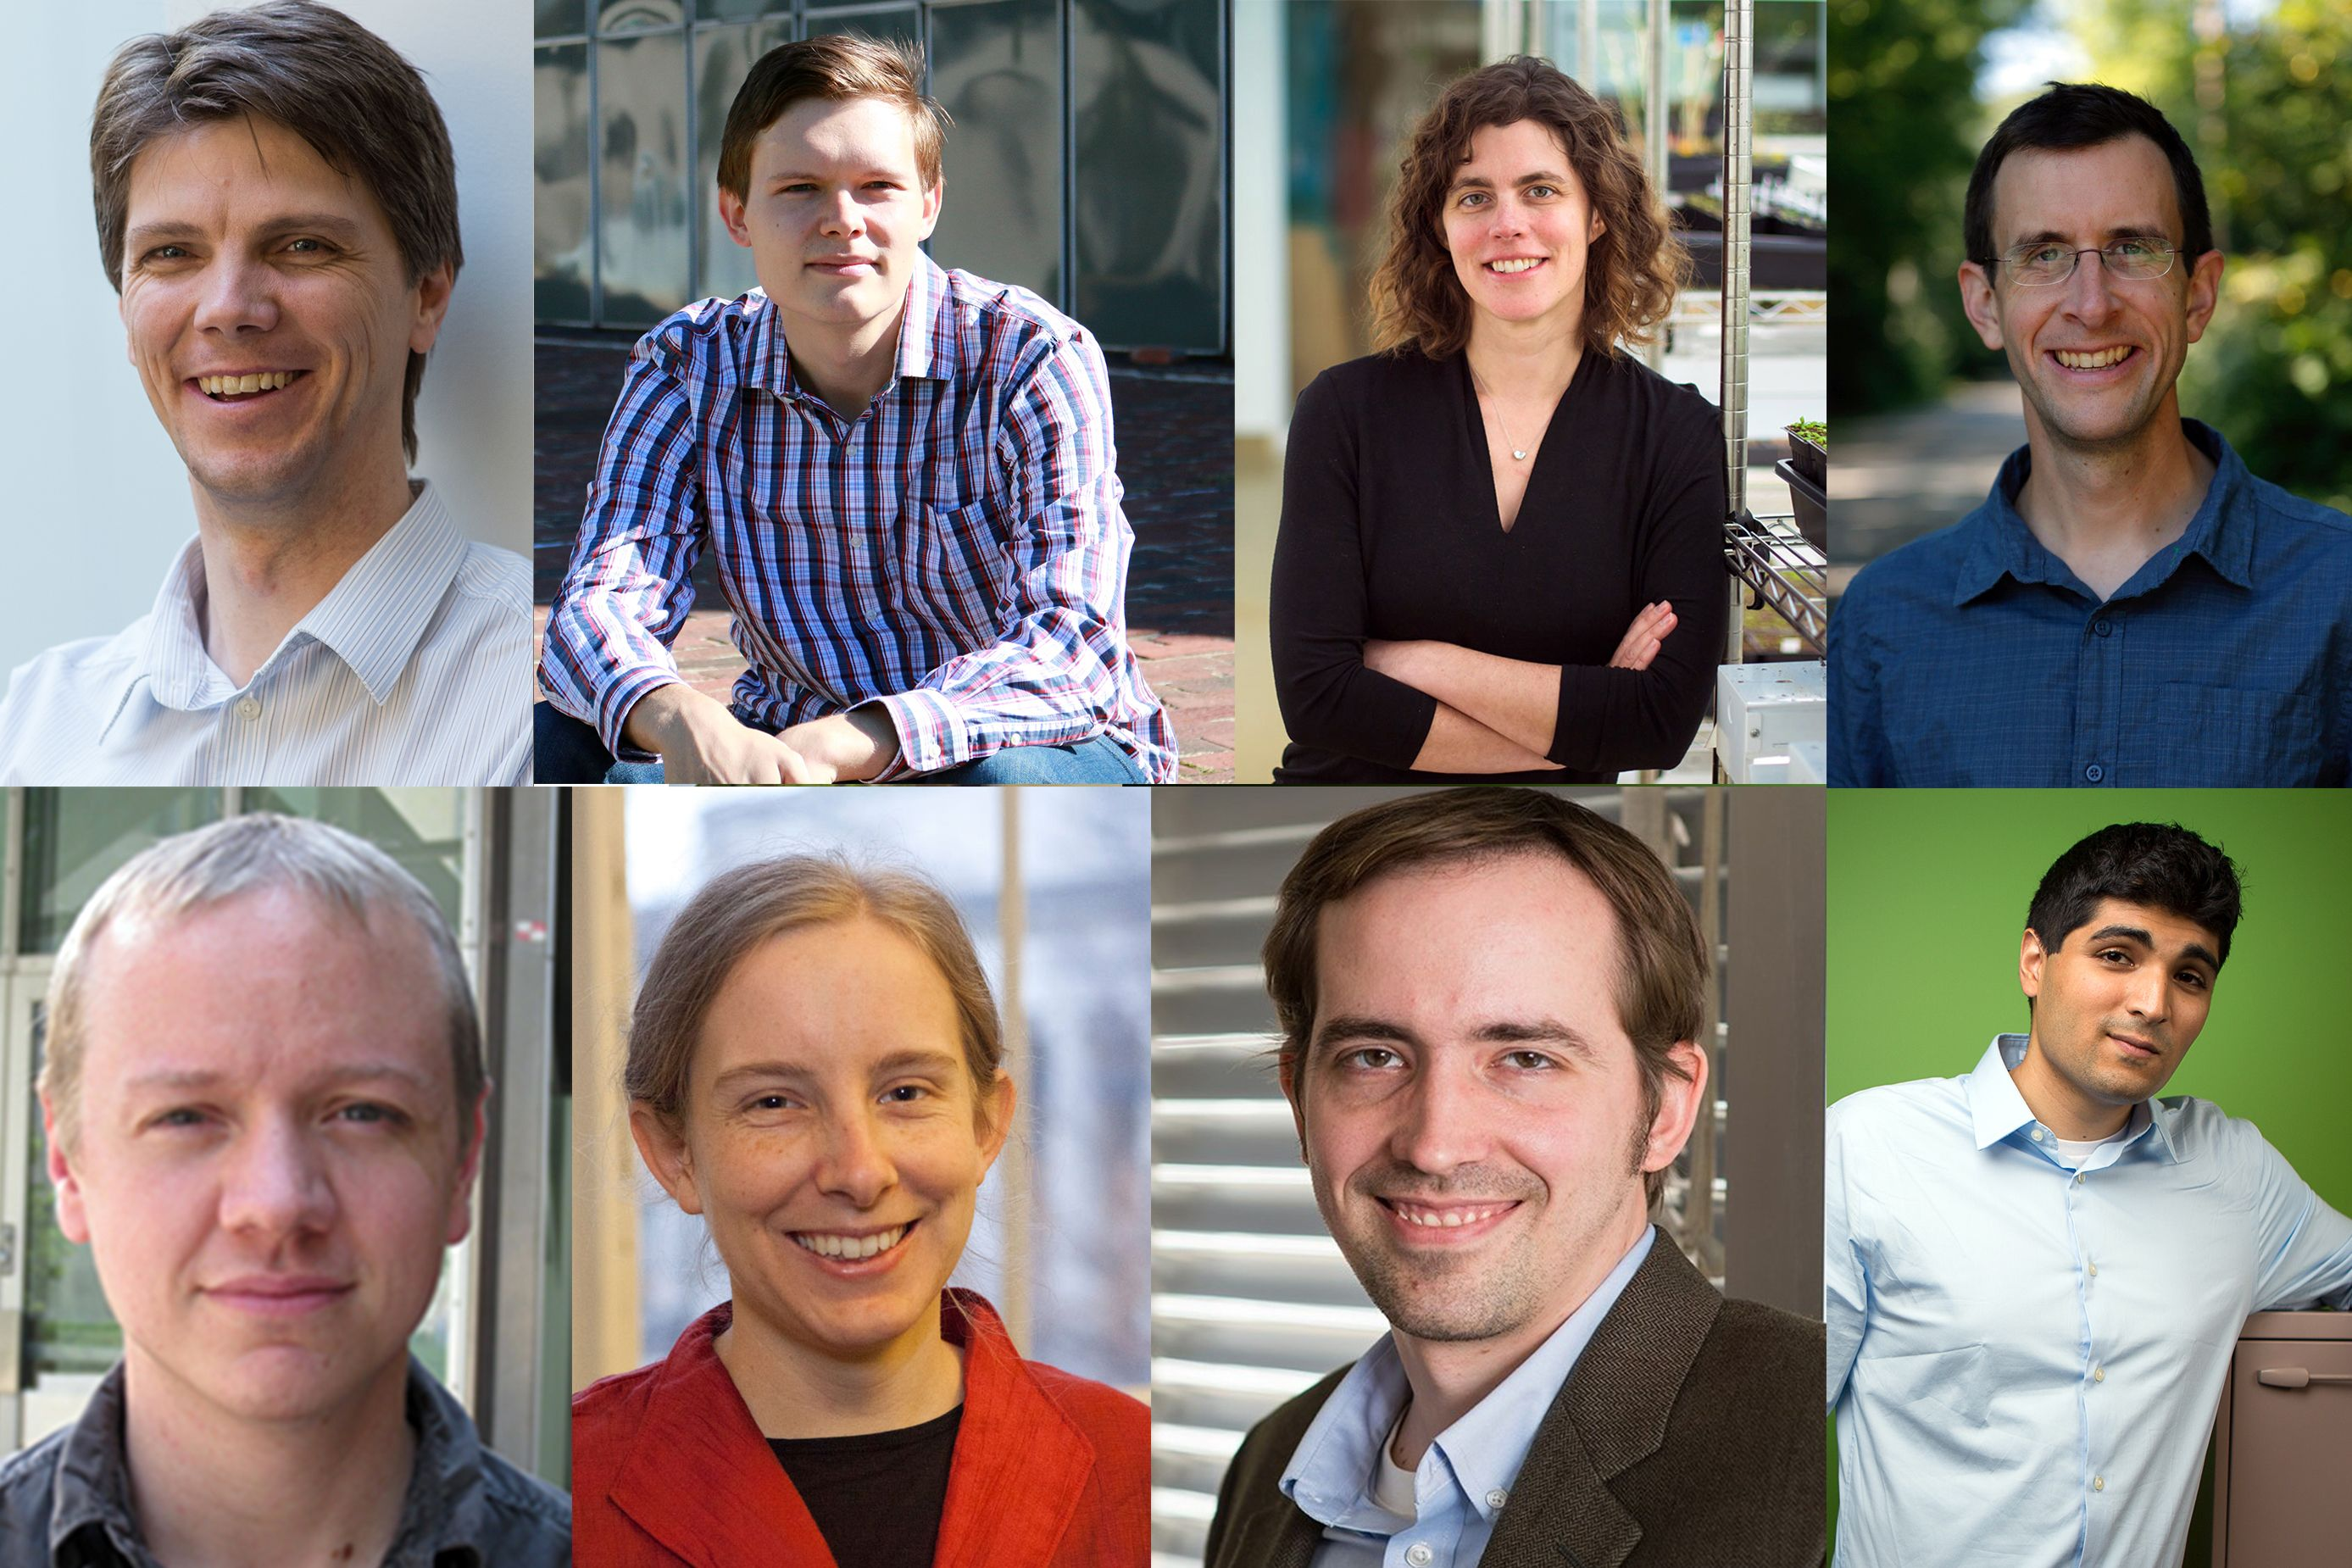 Meet the 2019 tenured professors in the School of Science